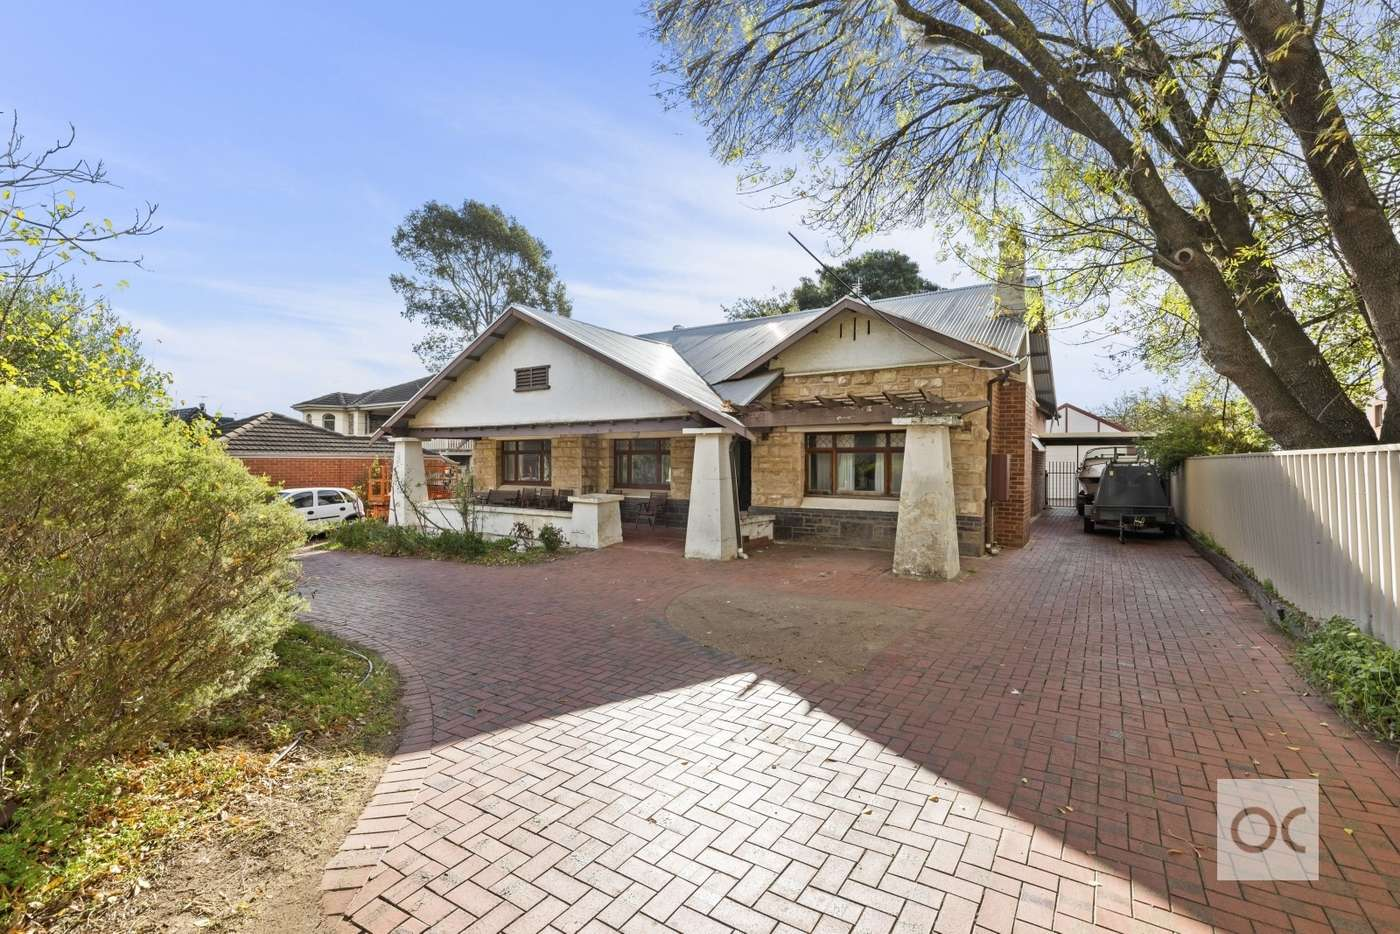 Main view of Homely house listing, 56 Cross Road, Myrtle Bank SA 5064